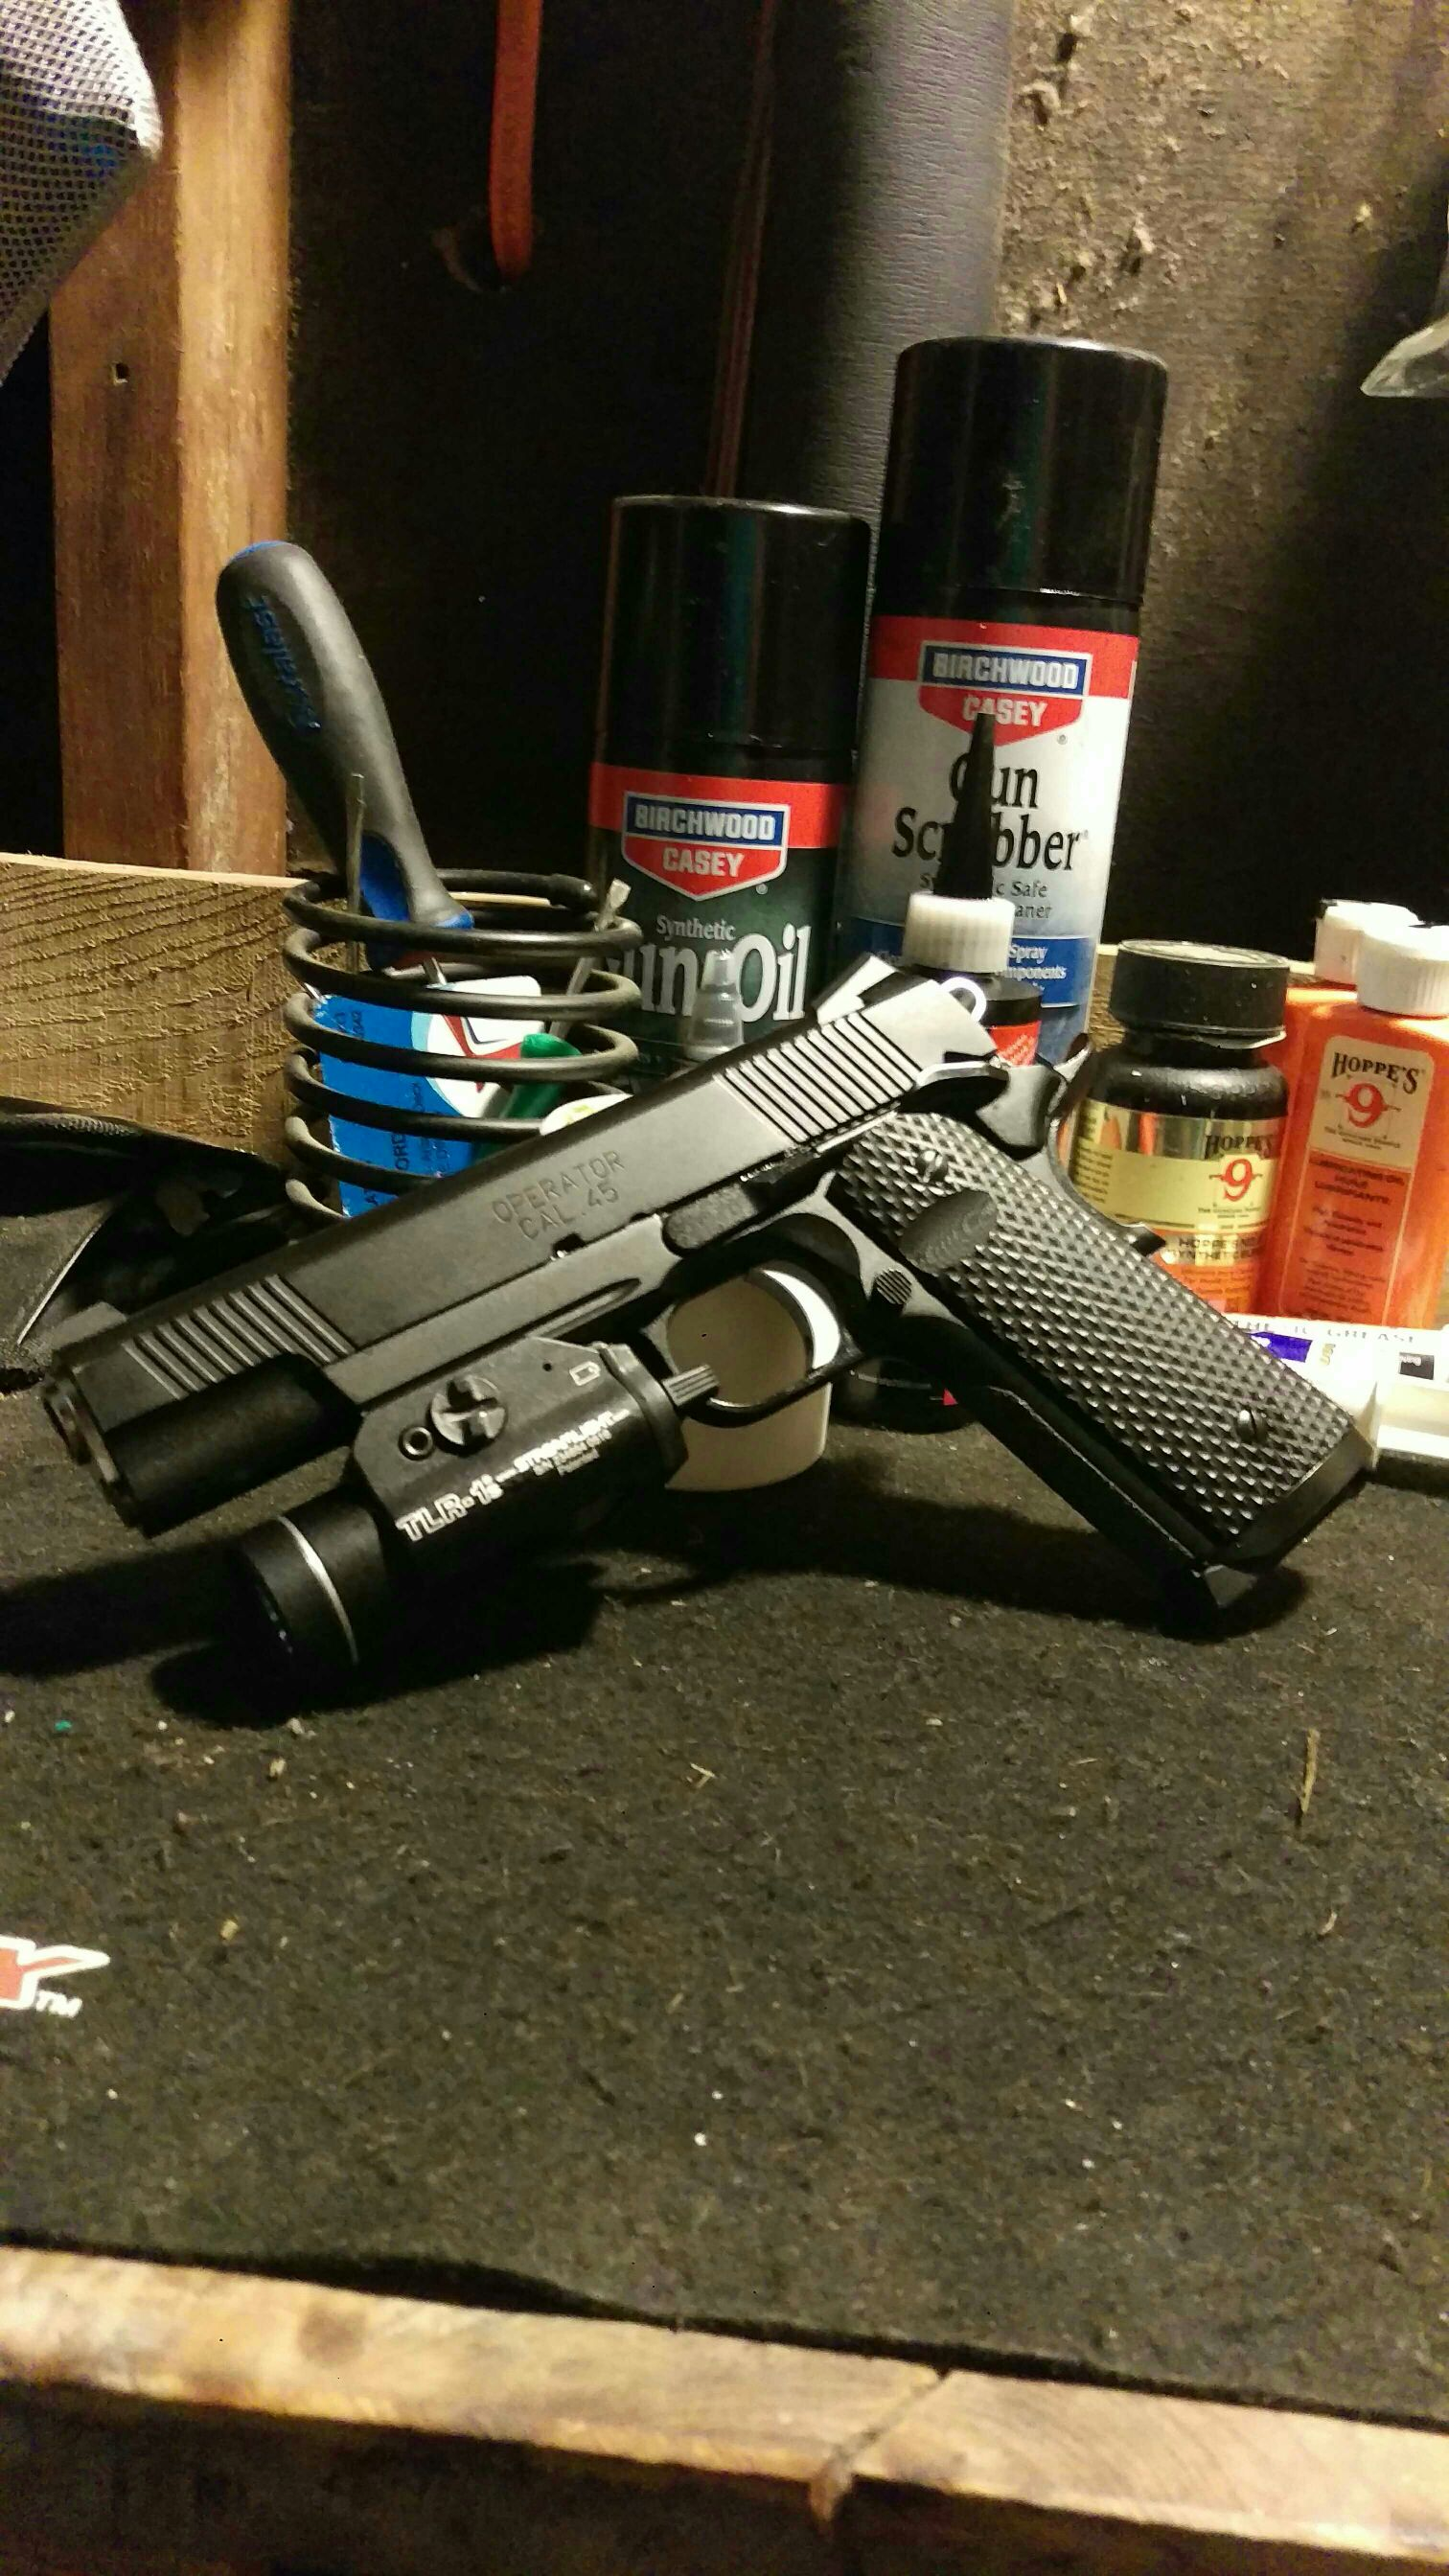 Springfield 1911 Pictures. - Springfield Armory M1911